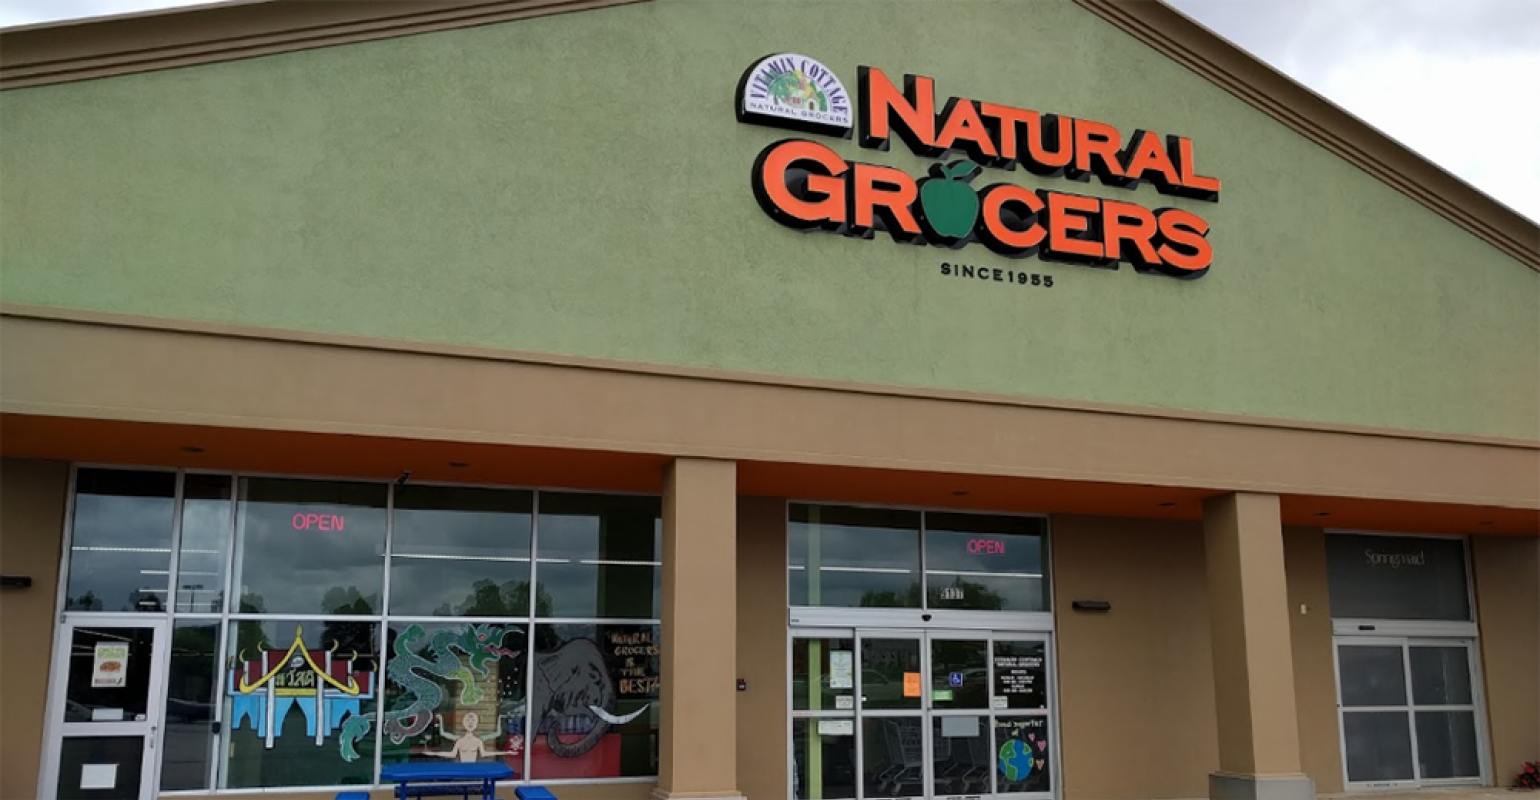 Natural Grocers closes its first store ever | Supermarket News